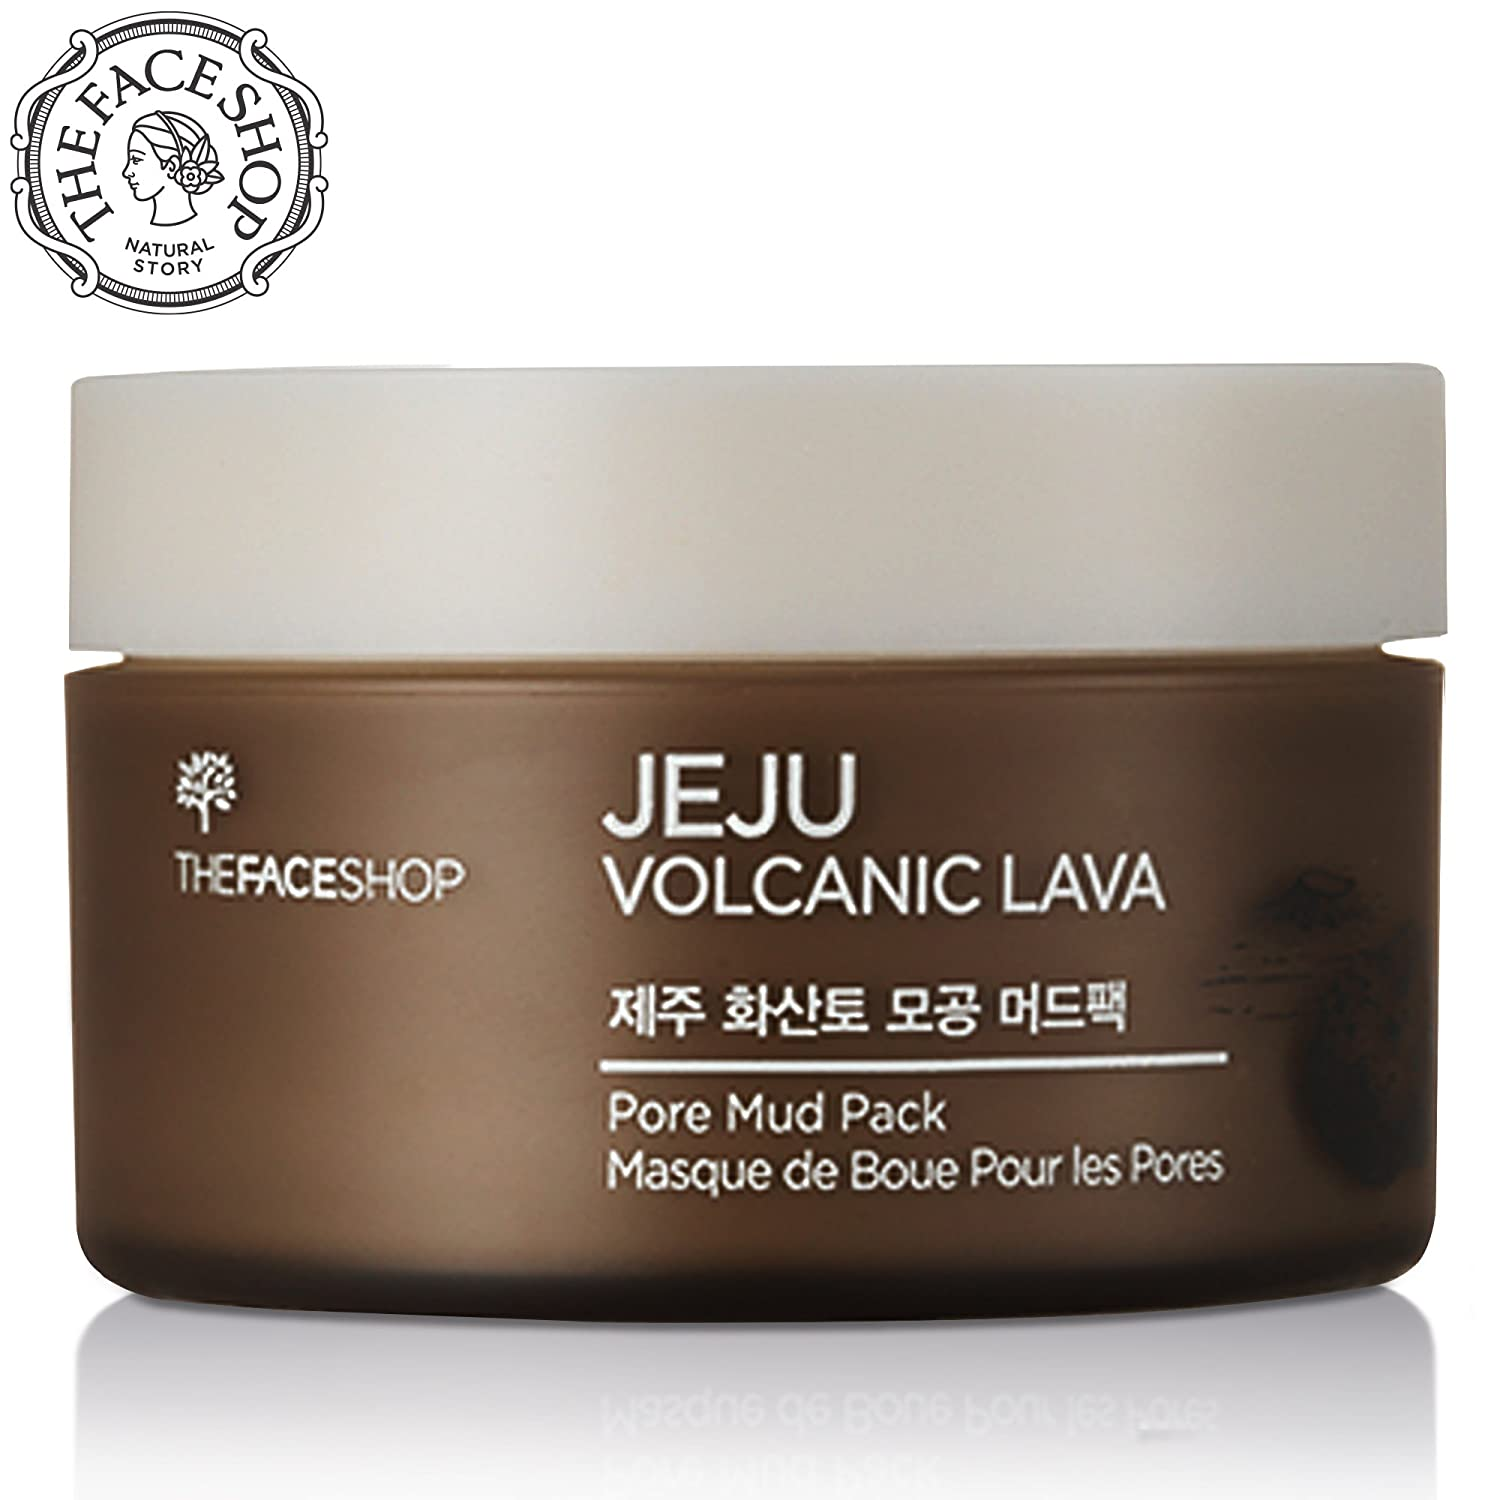 The Face Shop Jeju Volcanic Lava Pore Mud Pack, 100ml by The Face Shop Republic of Korea